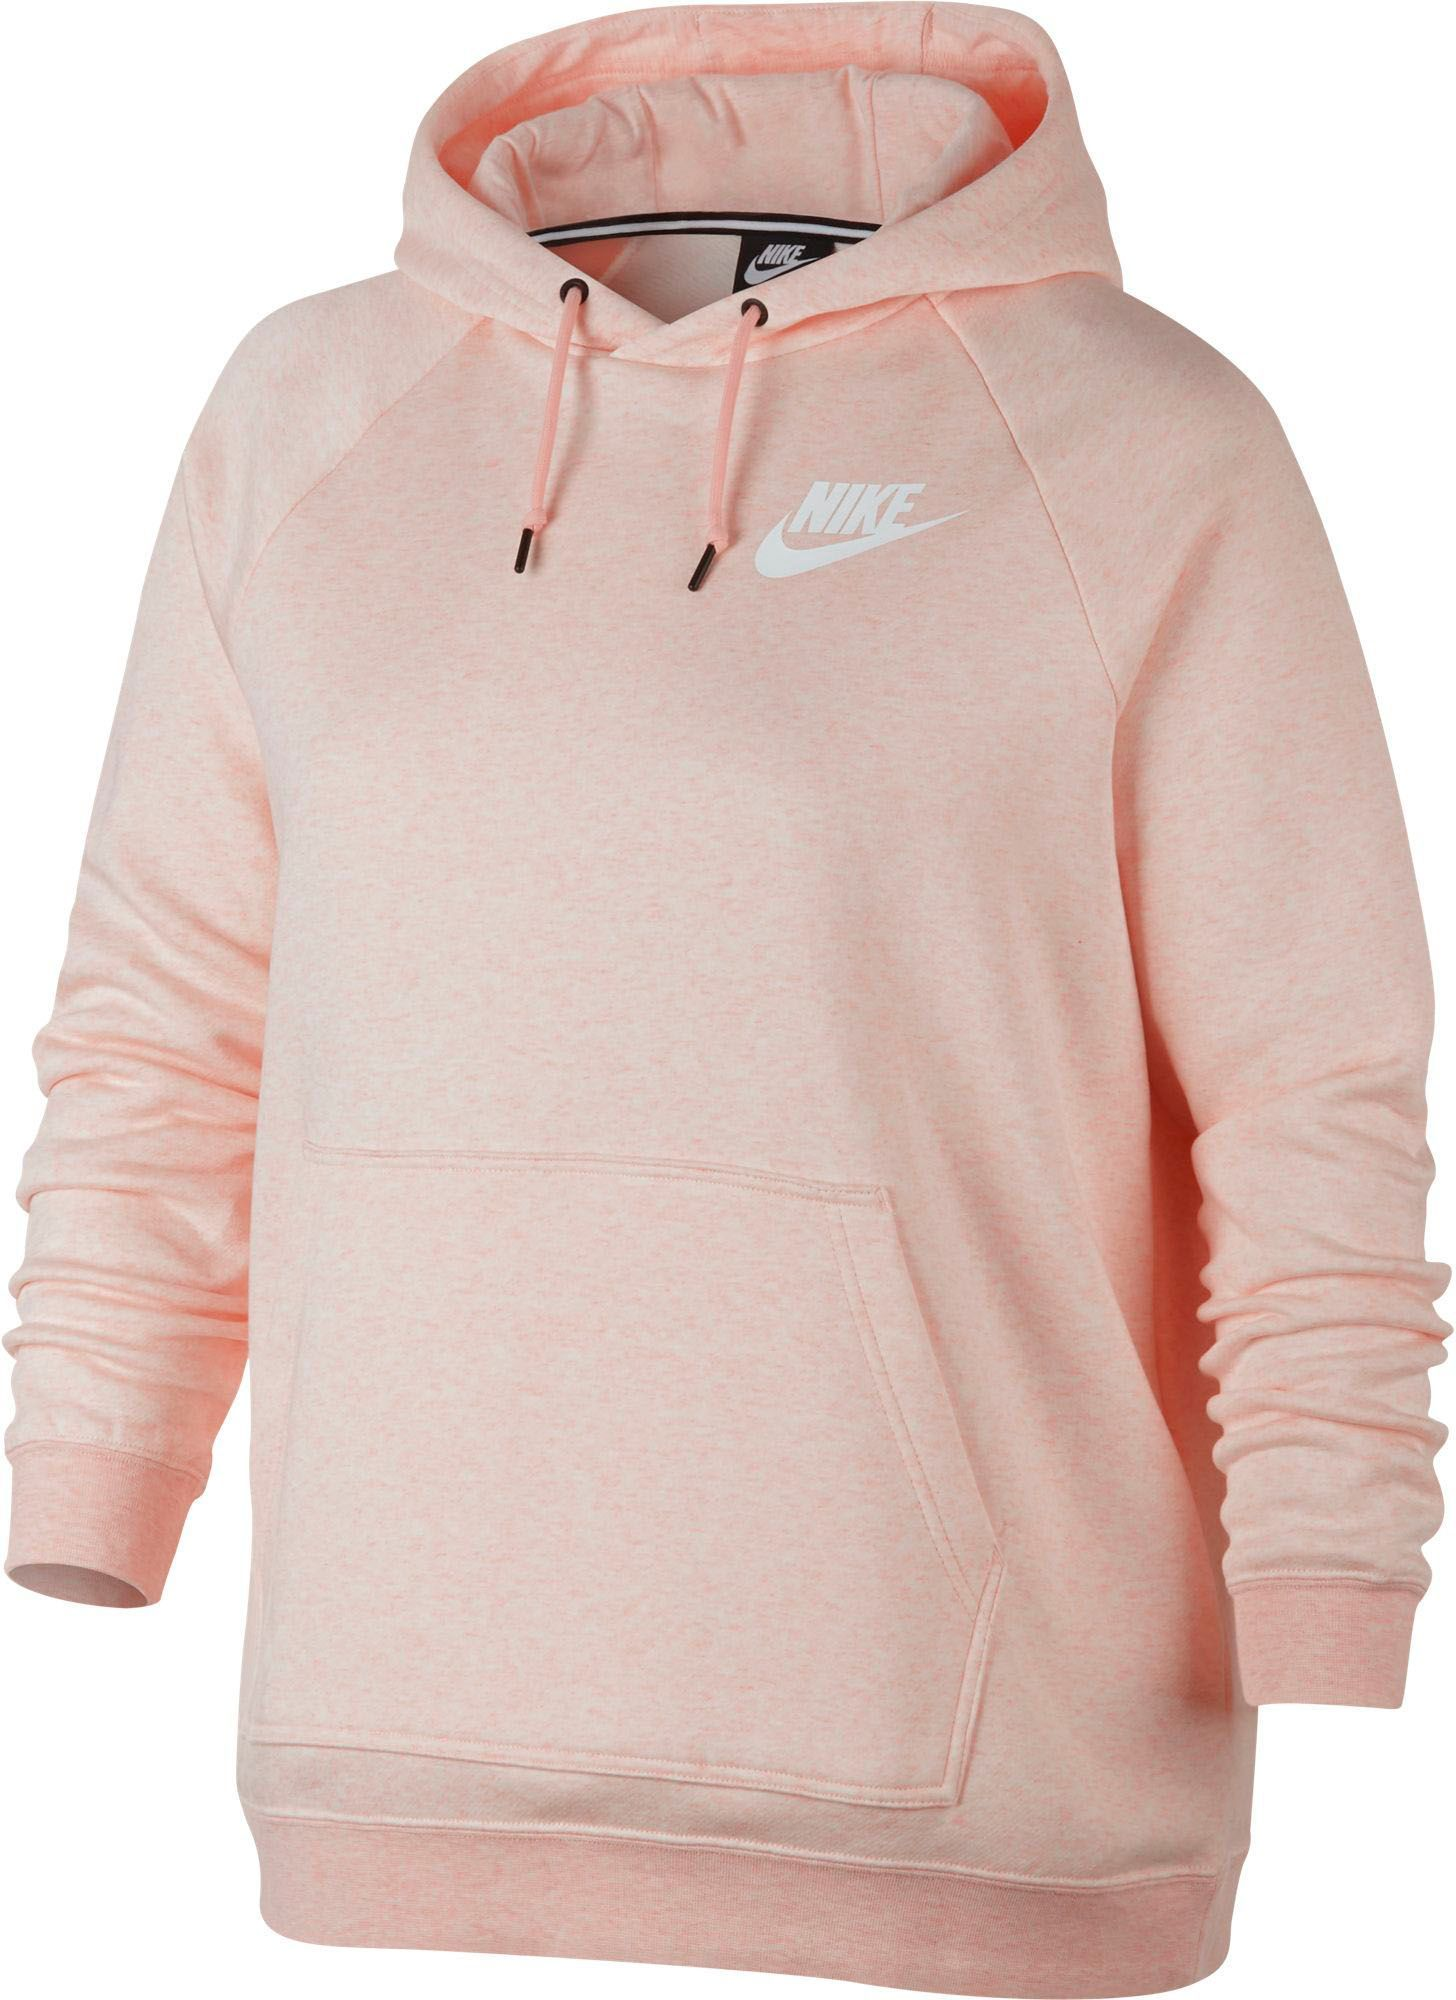 1663a742ab9d Nike Women s Plus Size Sportswear Rally Hoodie in 2019